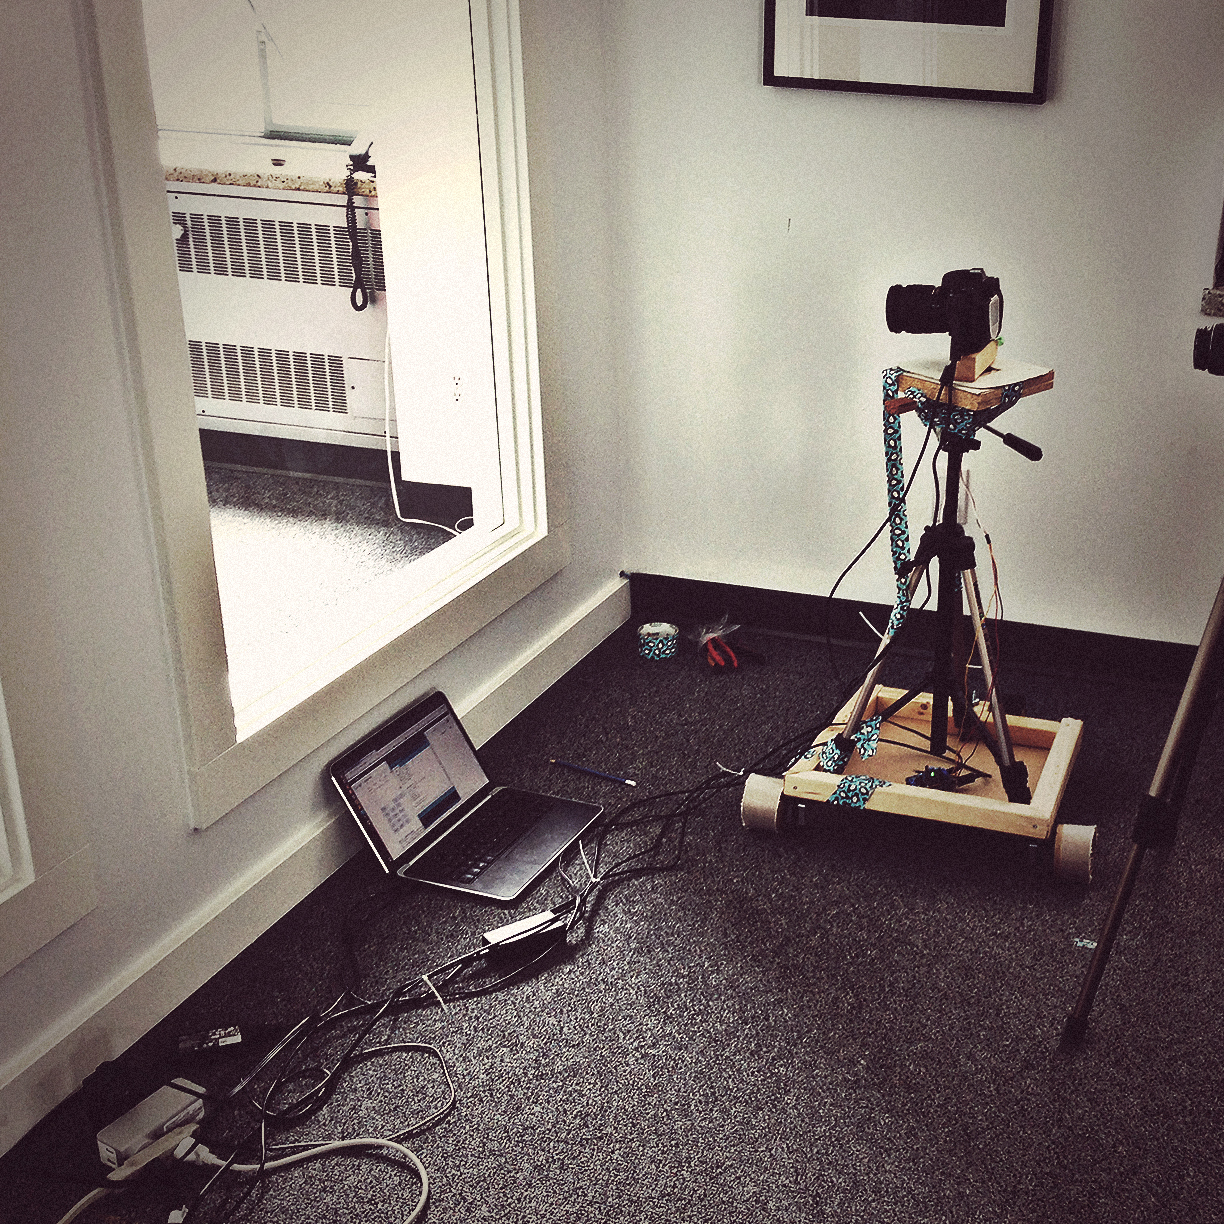 Technology. To create the unique time-lapse video featured on our new site, we built a computer-controlled camera dolly that crawled around the office throughout the day to capture our team at work.